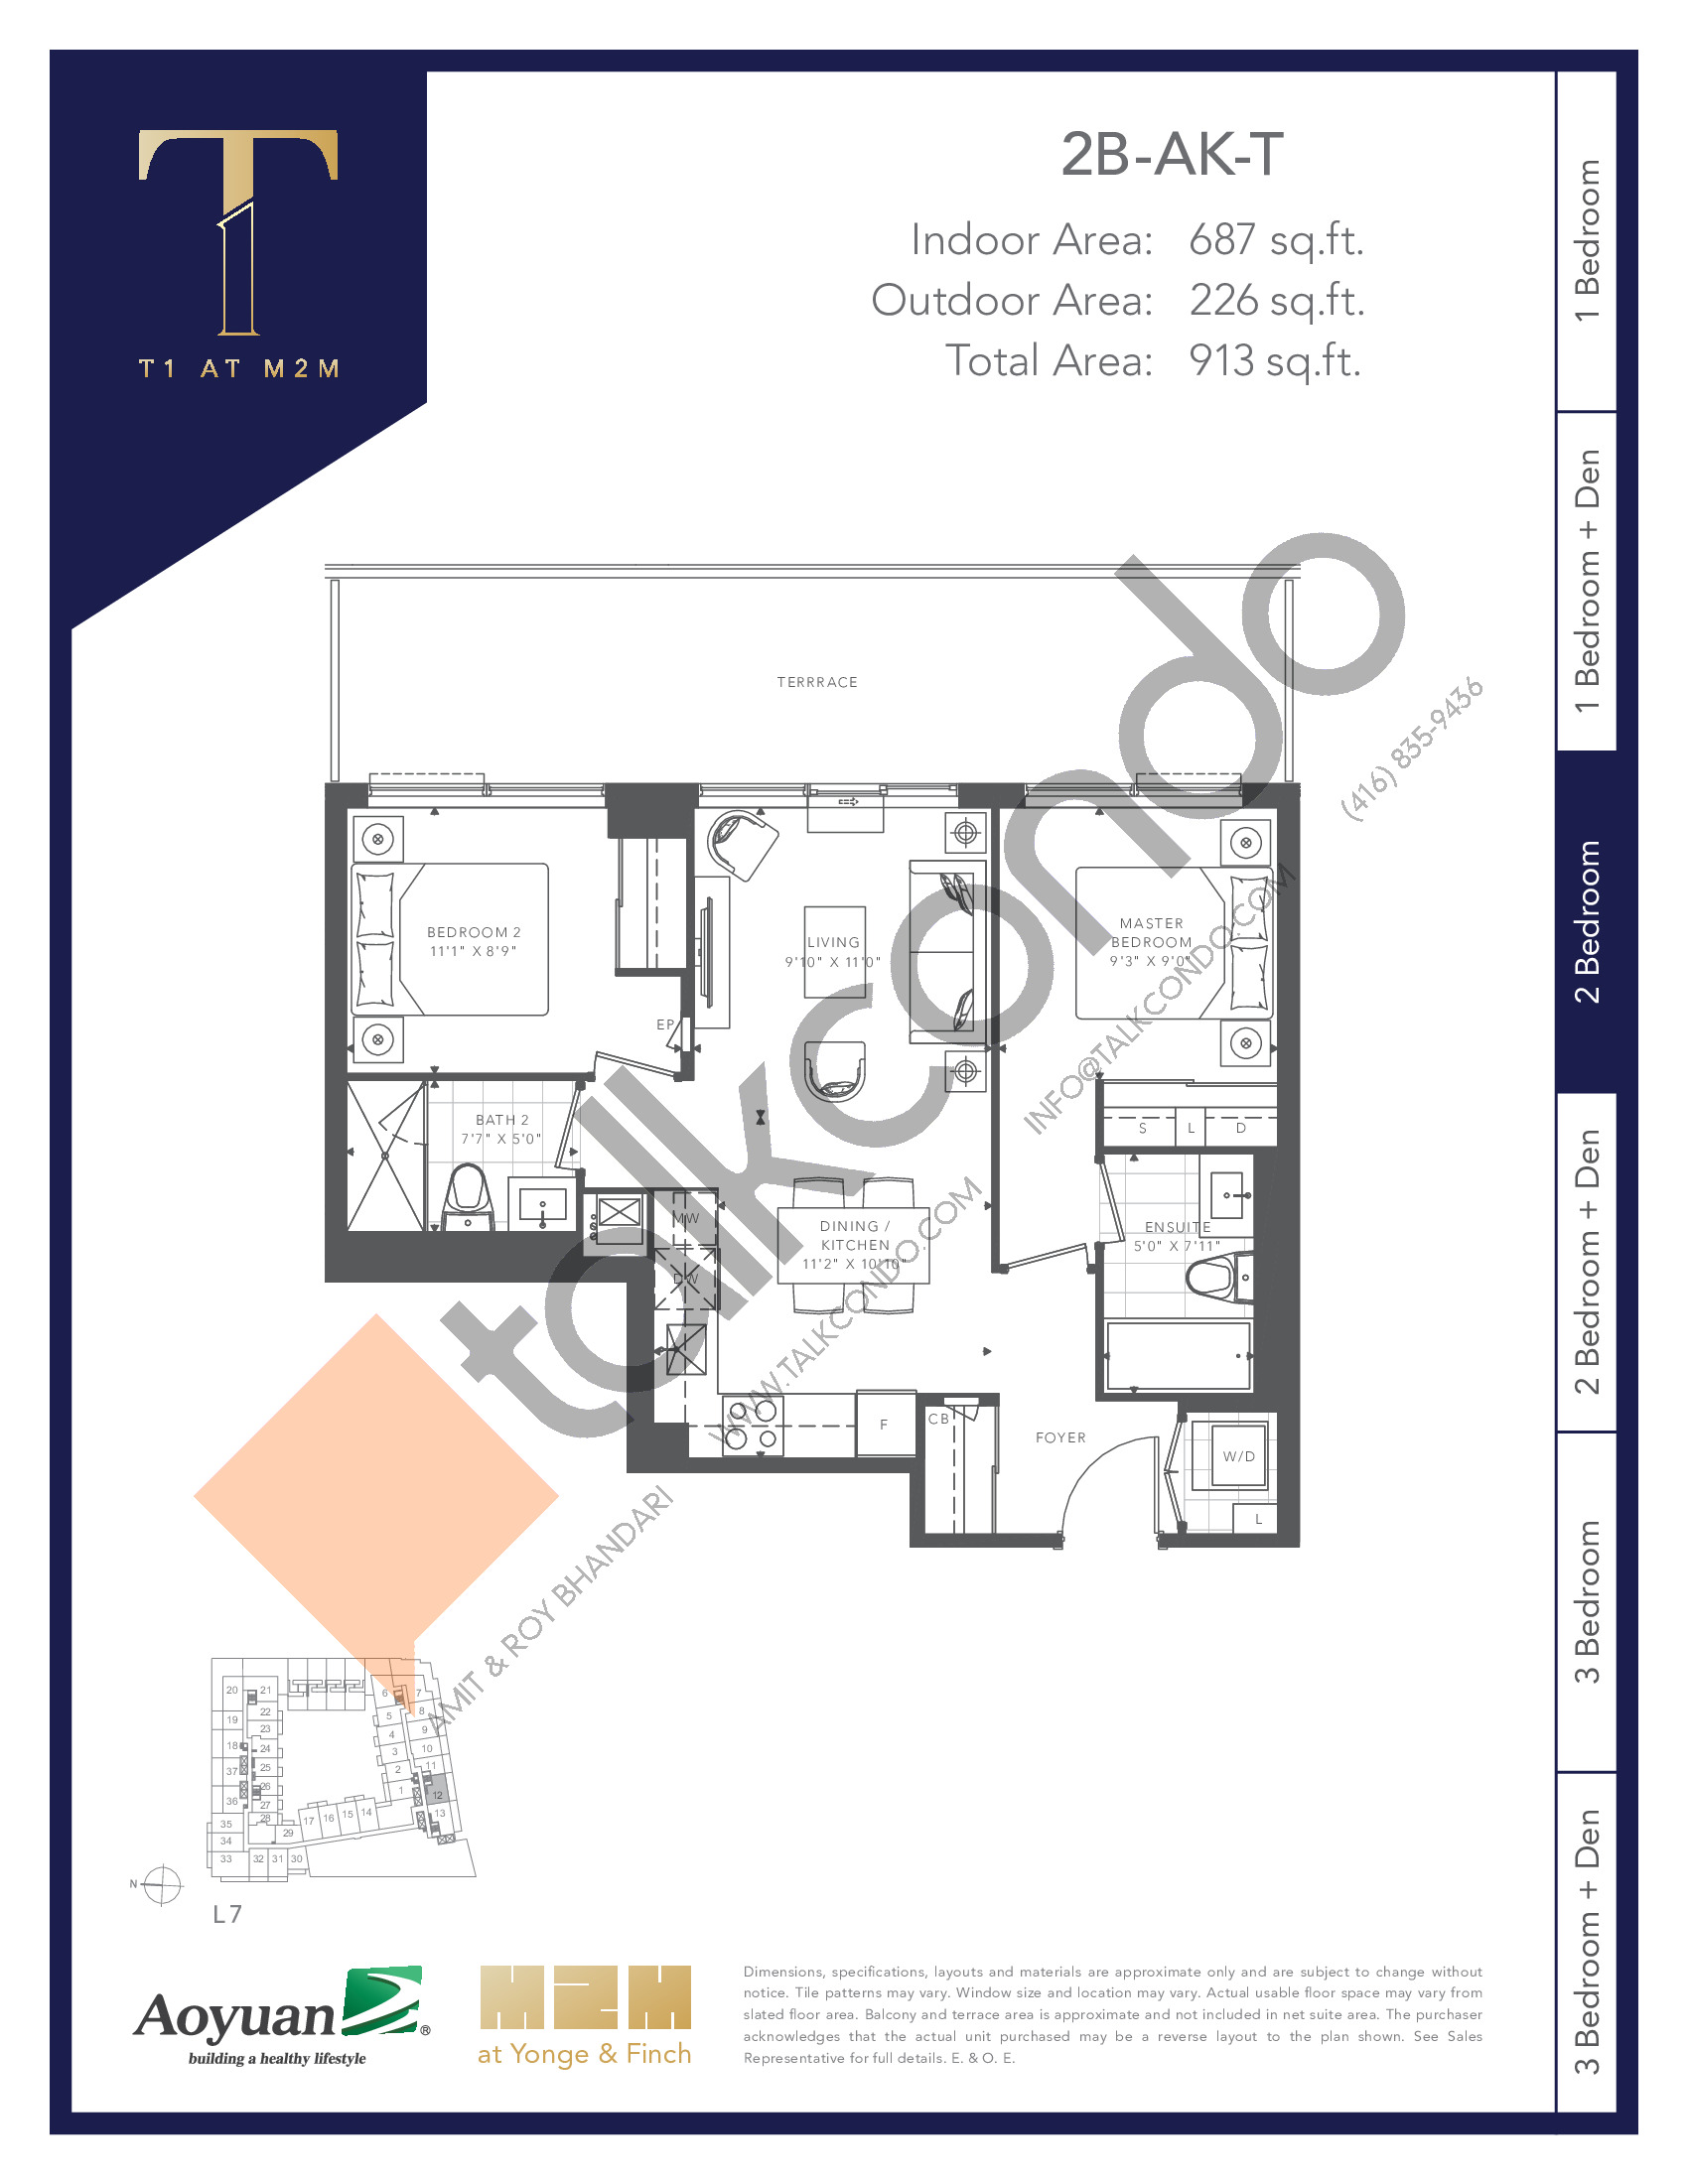 2B-AK-T Floor Plan at T1 at M2M Condos - 687 sq.ft